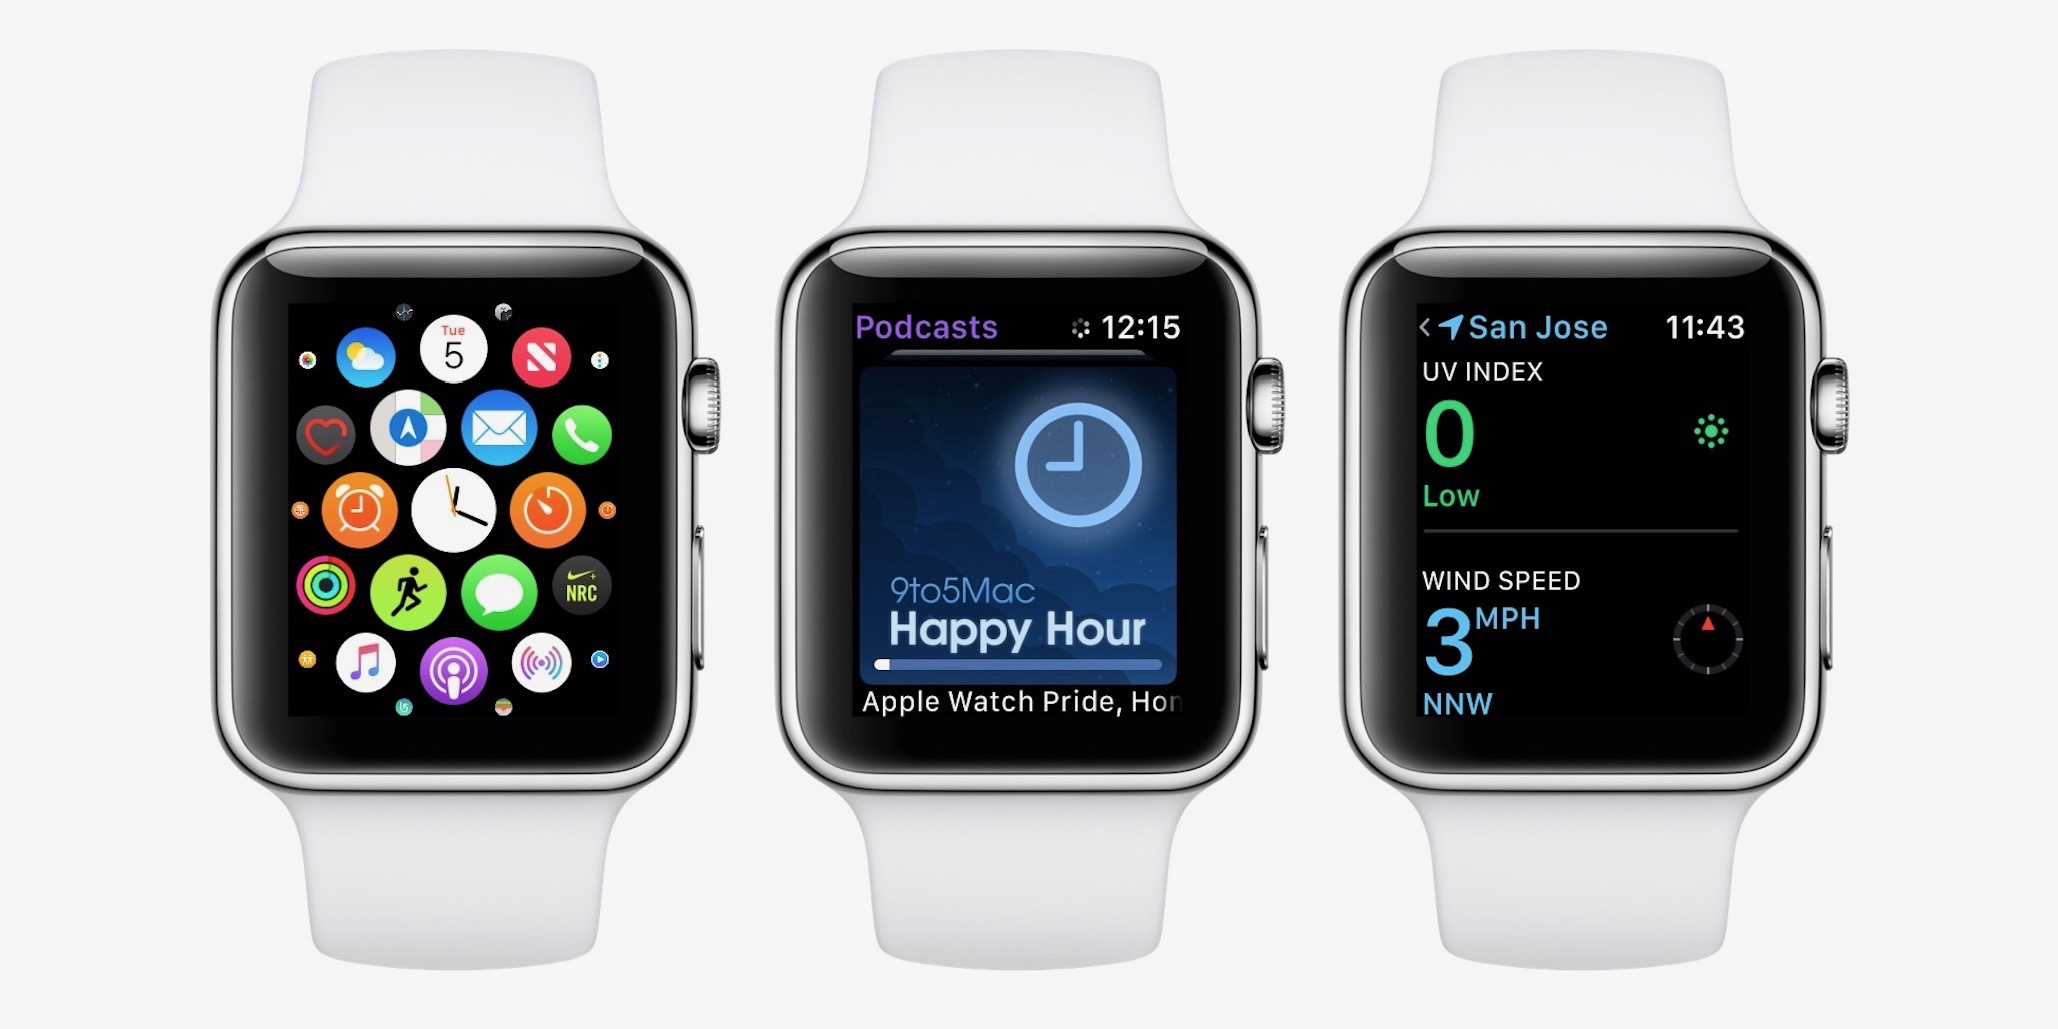 watchOS 5: Podcasts, Siri face, custom Control Center, more